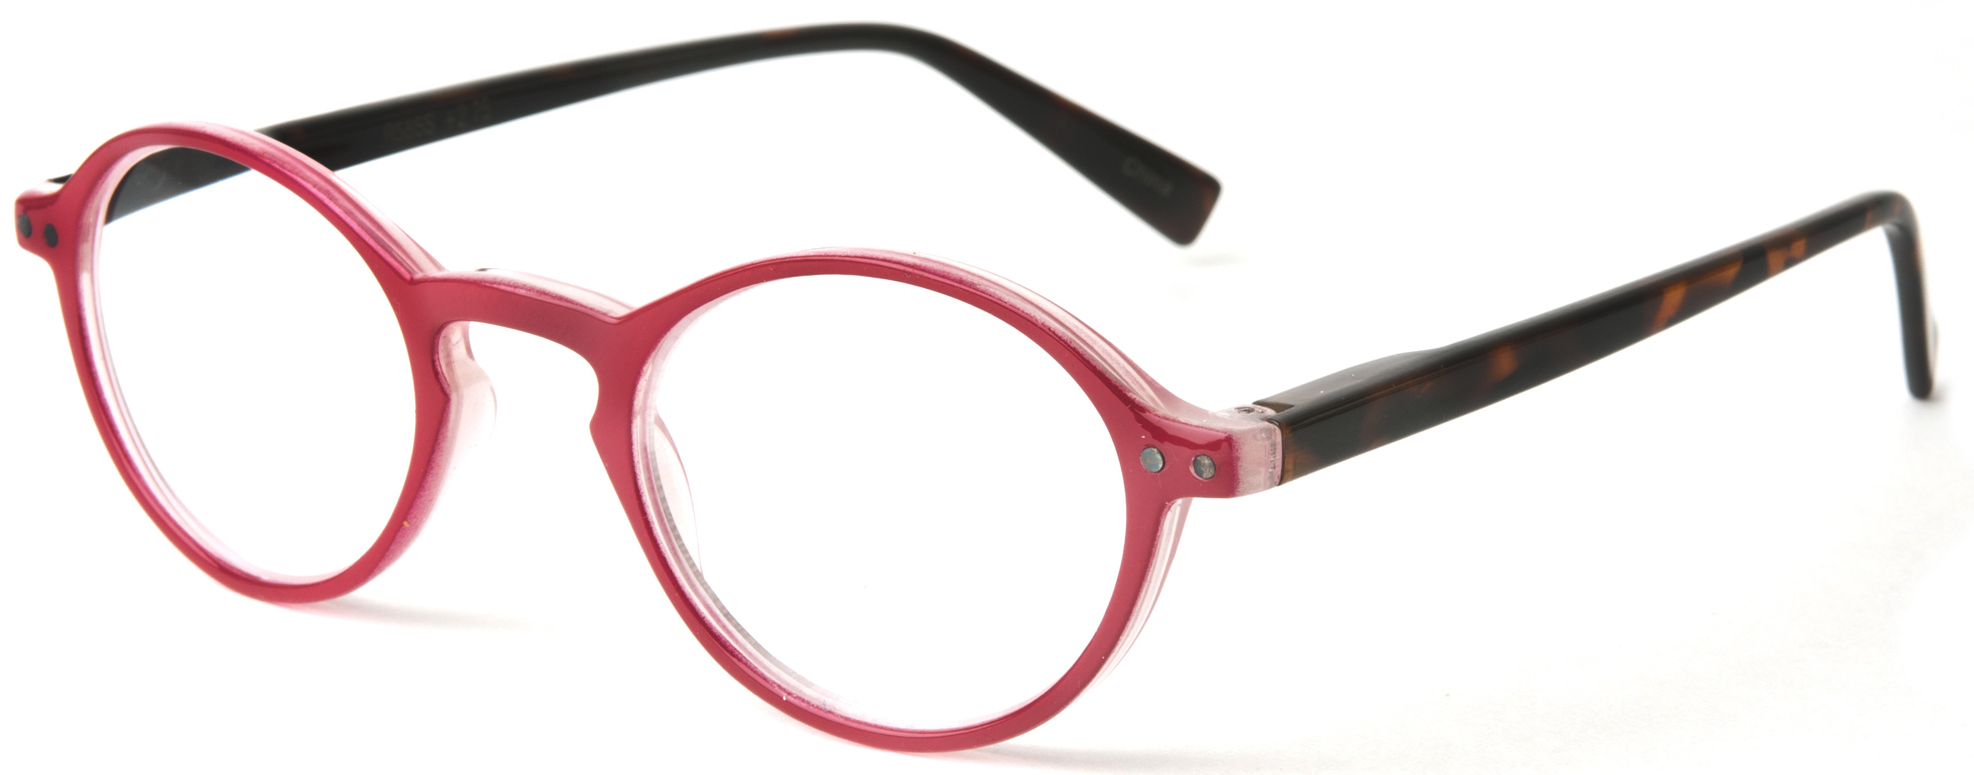 Preppy Round Readers in Red